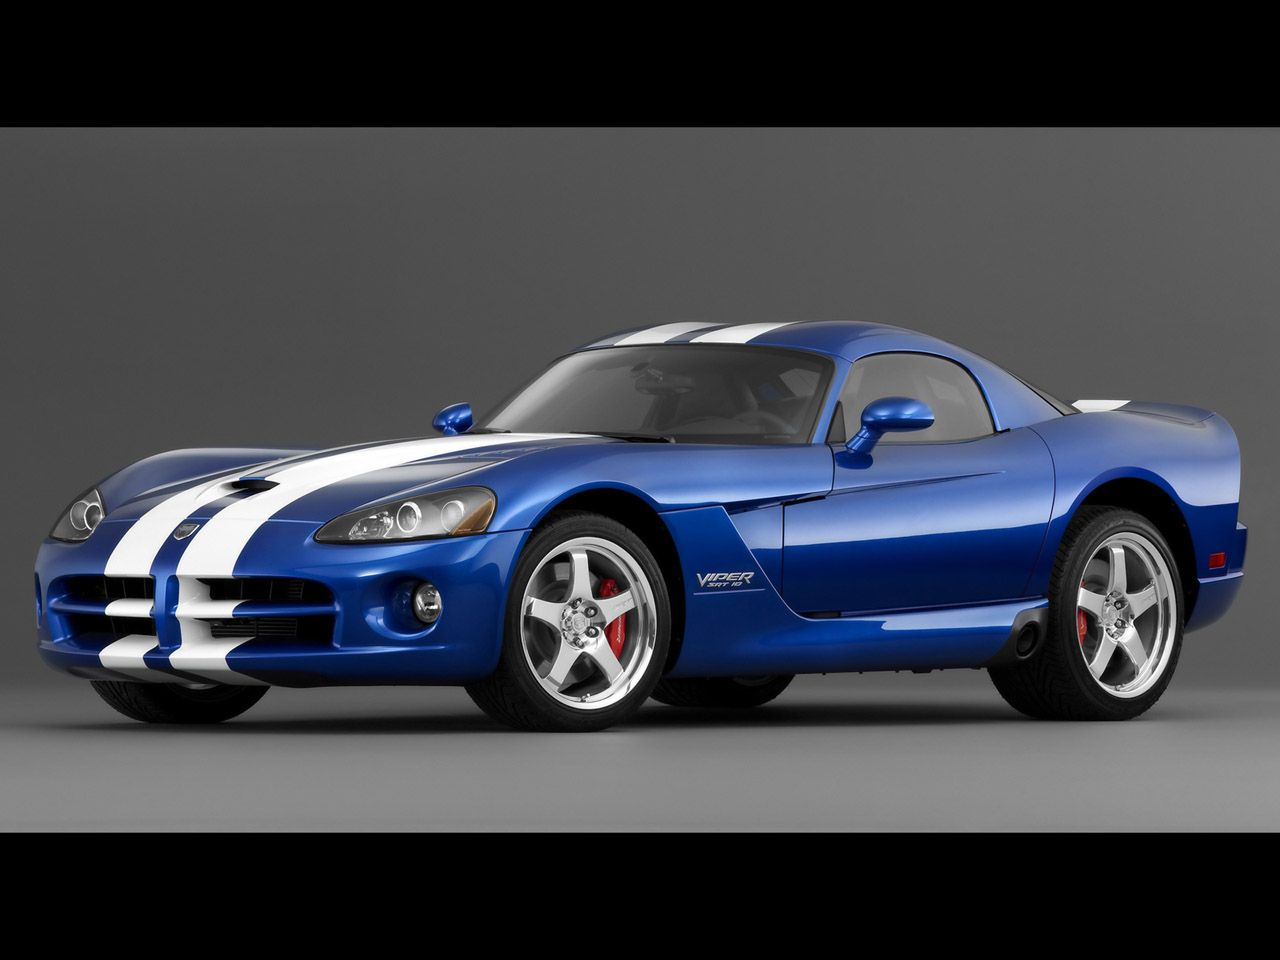 Wallpaper : 2006 Dodge Viper SRT10 Coupe 2